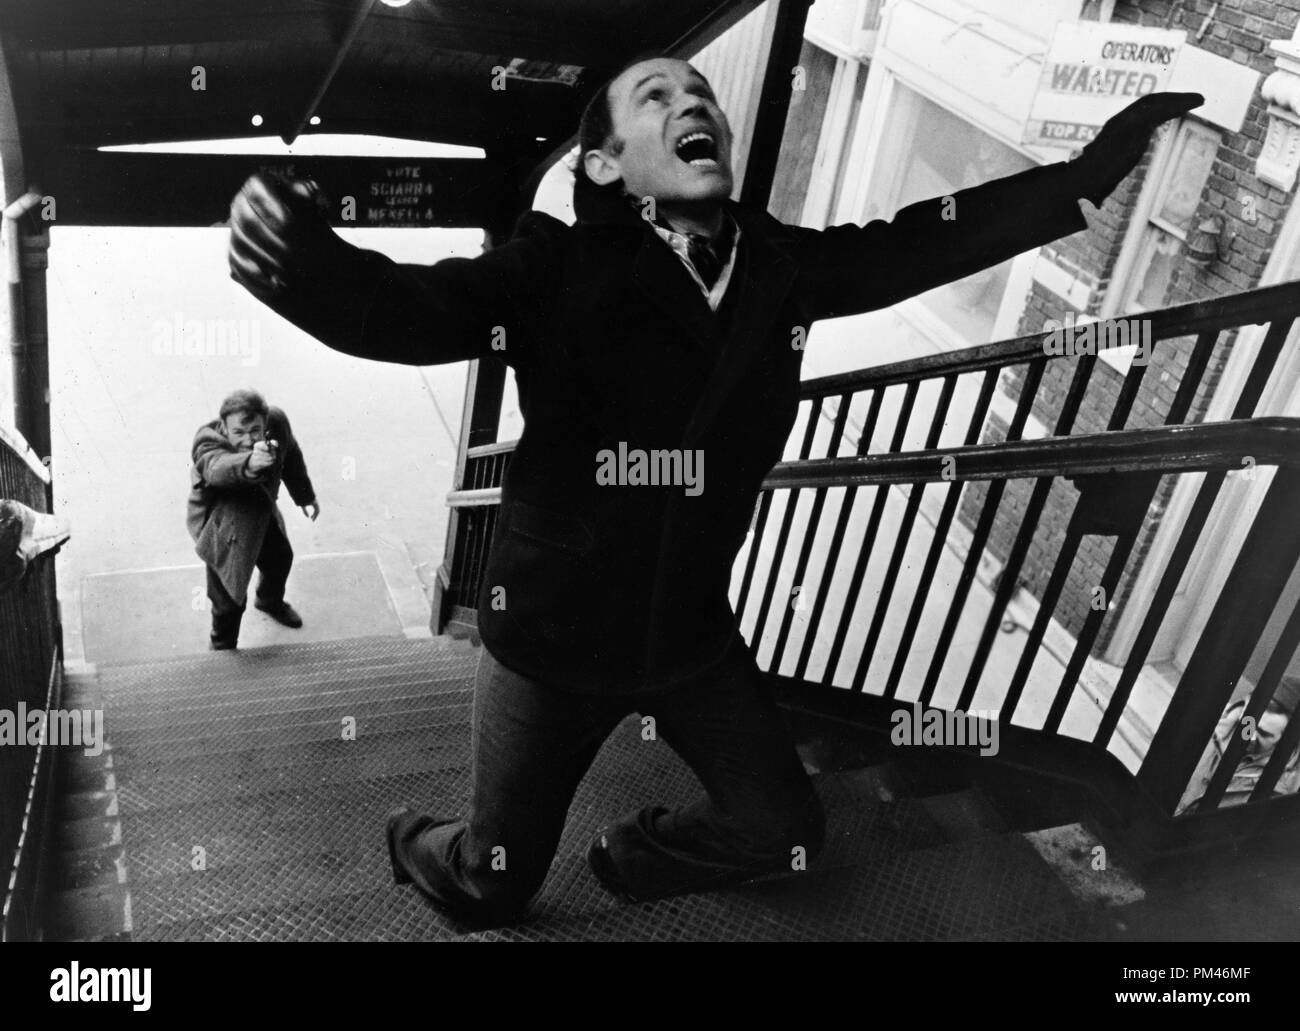 Gene Hackman 'The French Connection' 1971 20th Century Fox . File Reference #1076_016THA - Stock Image